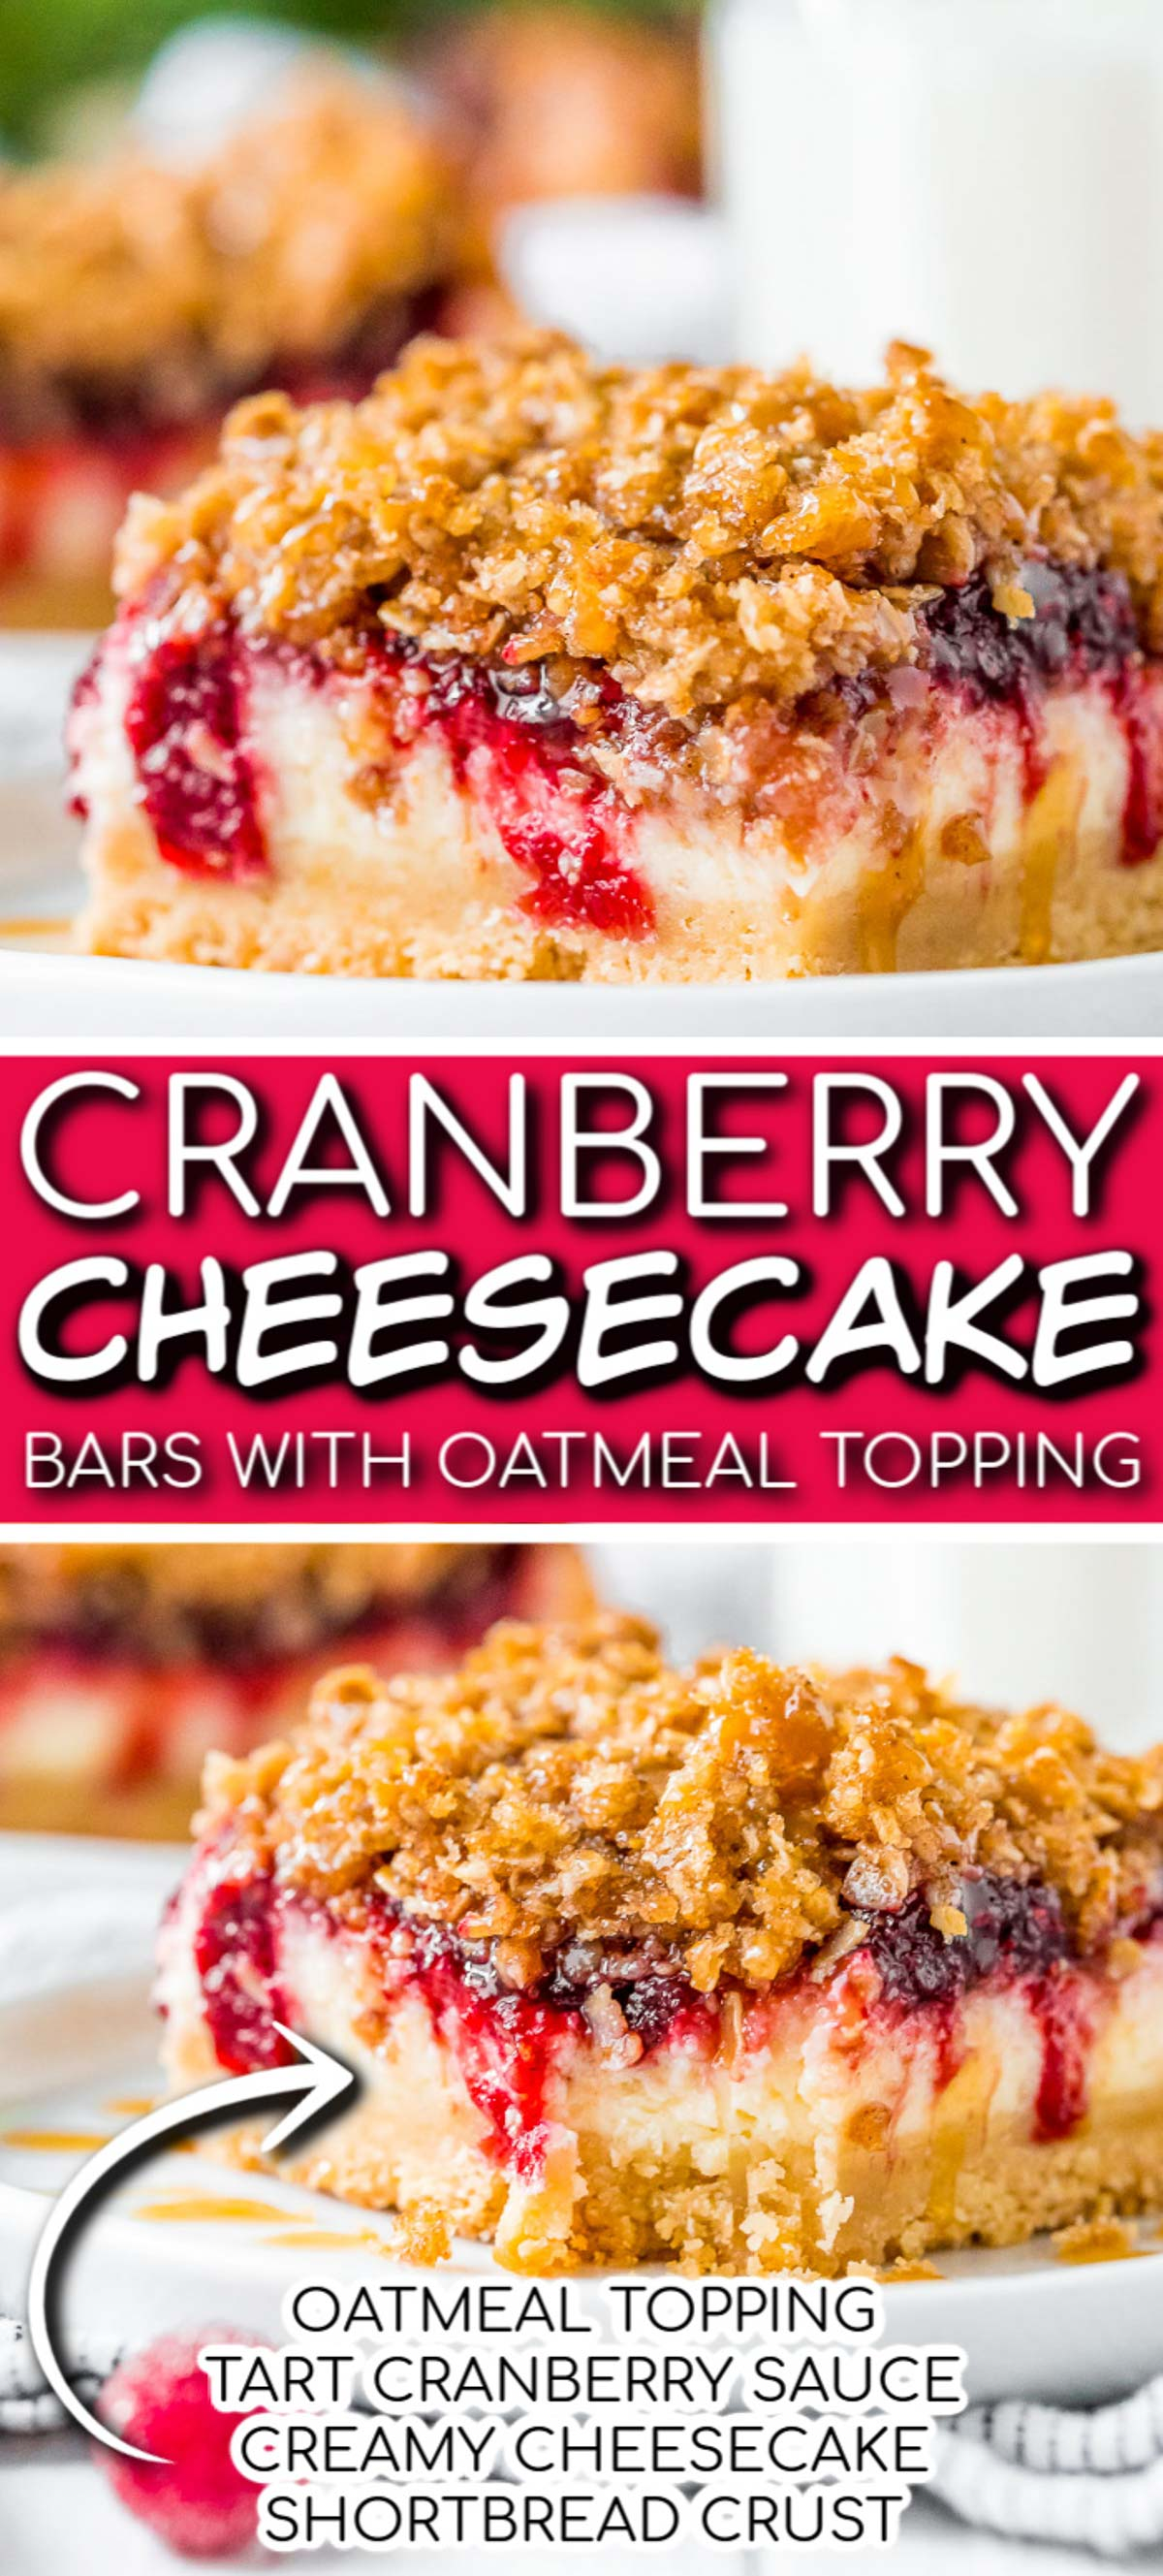 These Cranberry Cheesecake Bars are made with layers of shortbread, cheesecake, cranberry topping, and oatmeal crumble. via @sugarandsoulco